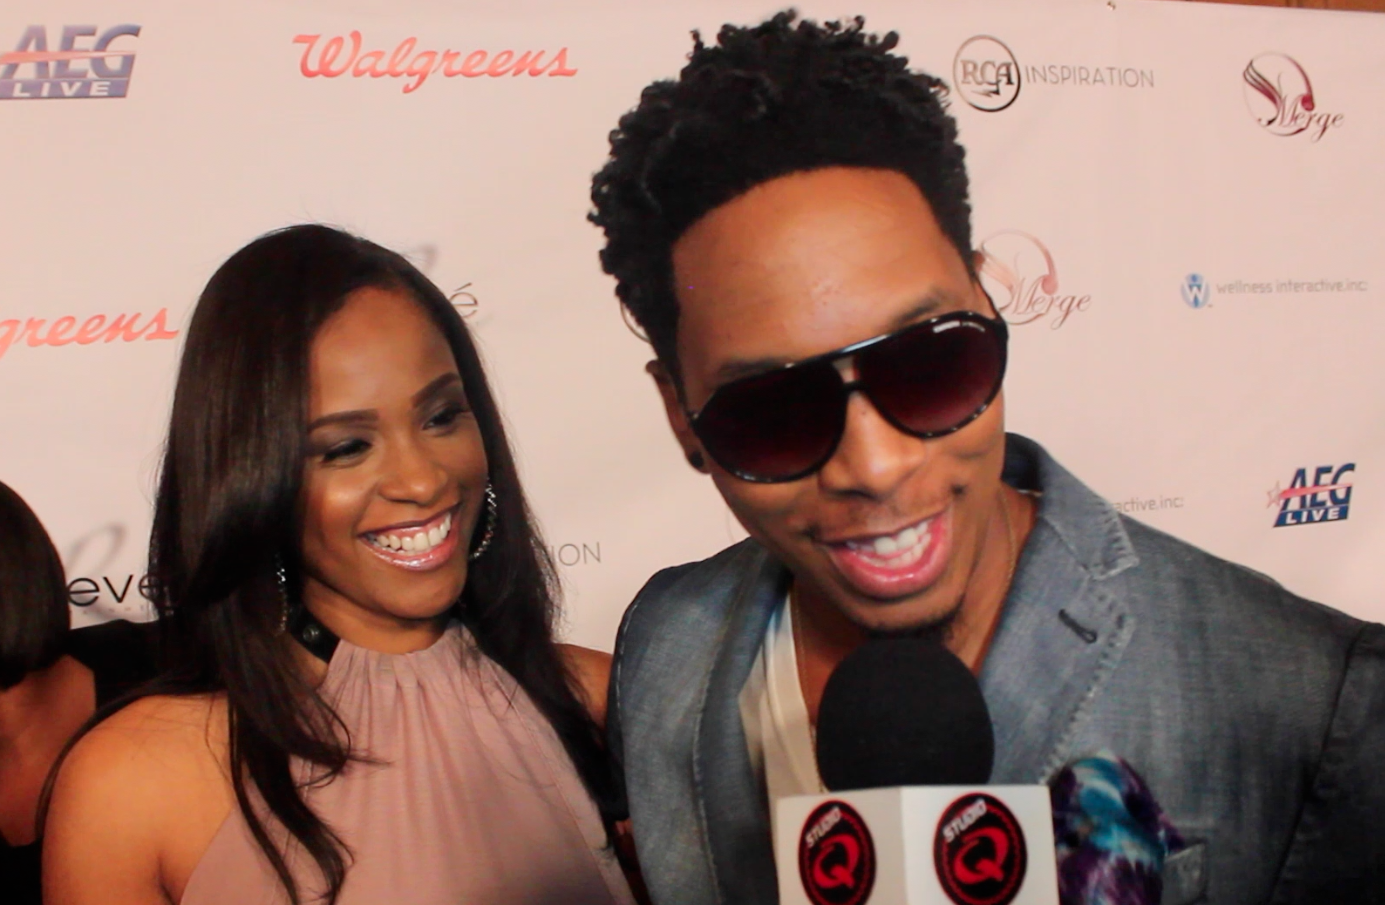 Deitrick Haddon - R.E.D. (Restoring Everything Damaged) Deluxe Version (2013) during award presentation ceremony